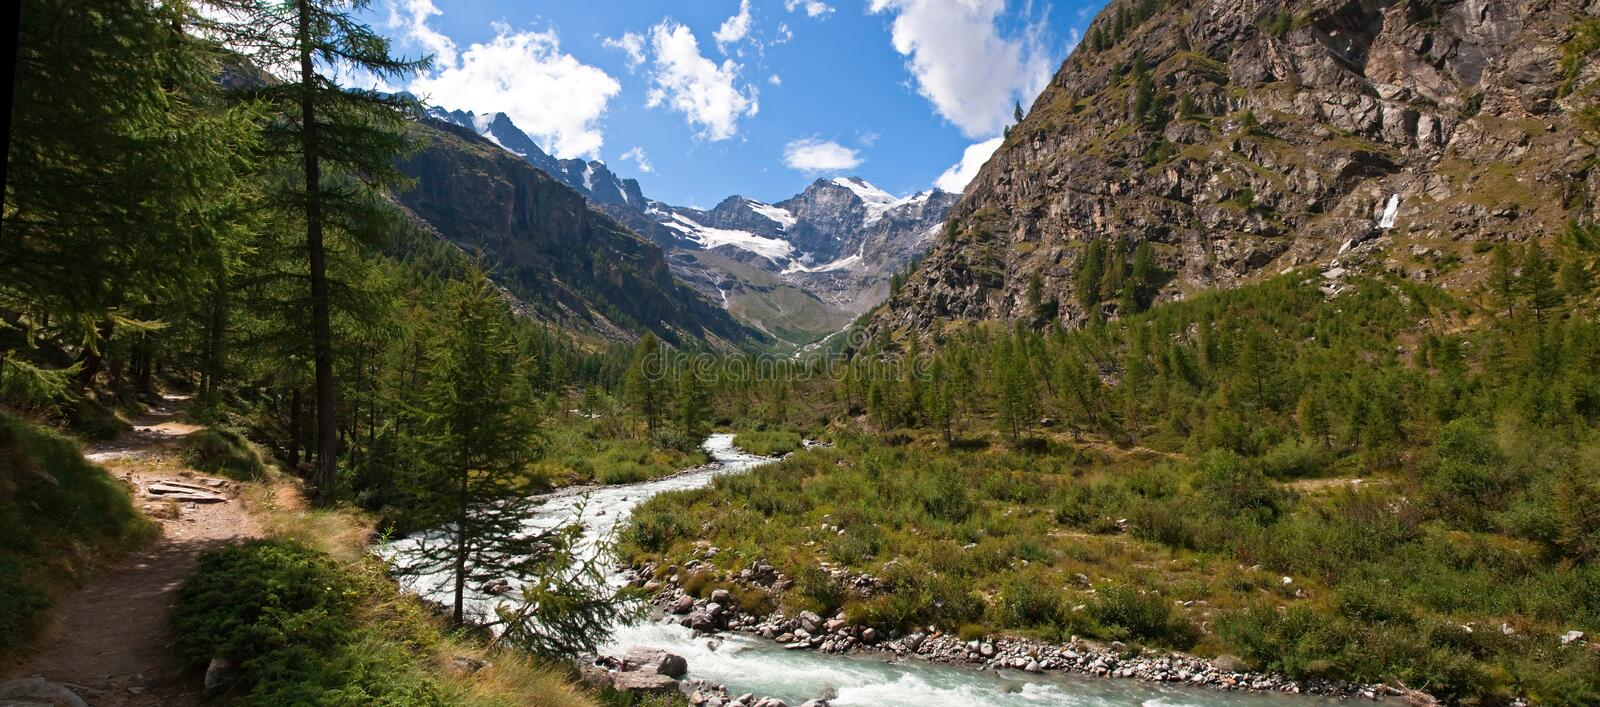 Gran Paradiso National Park. Scenic view of river in Aosta Valley with Alps mountains in background, Gran Paradiso National Park, Italy royalty free stock image